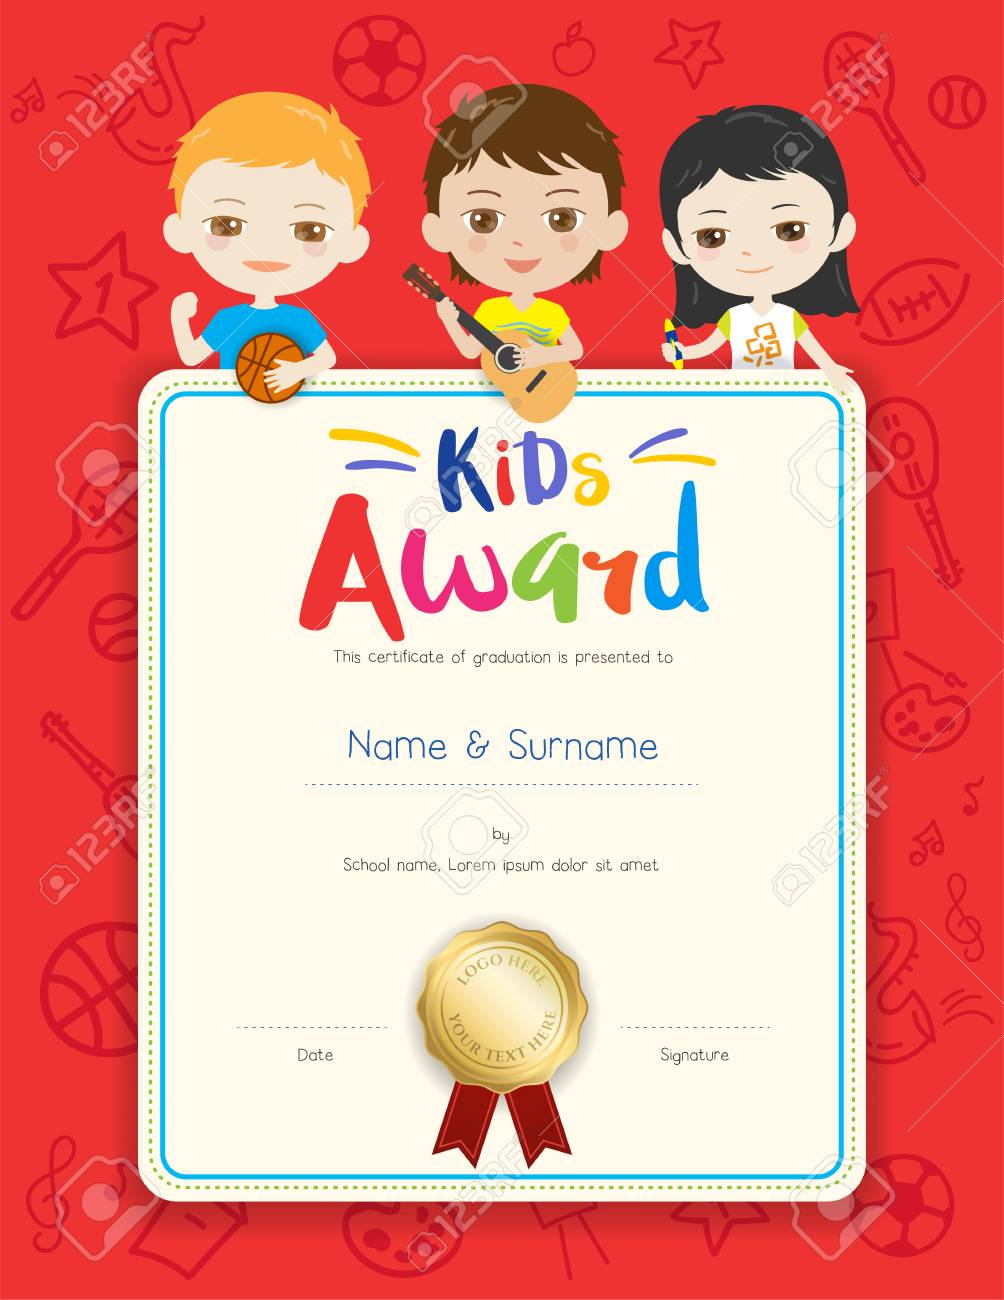 Portrait Colorful Kids Award Diploma Certificate Template In Cartoon Style  With Happy Boy And Girl Stock  Certificate Template For Kids